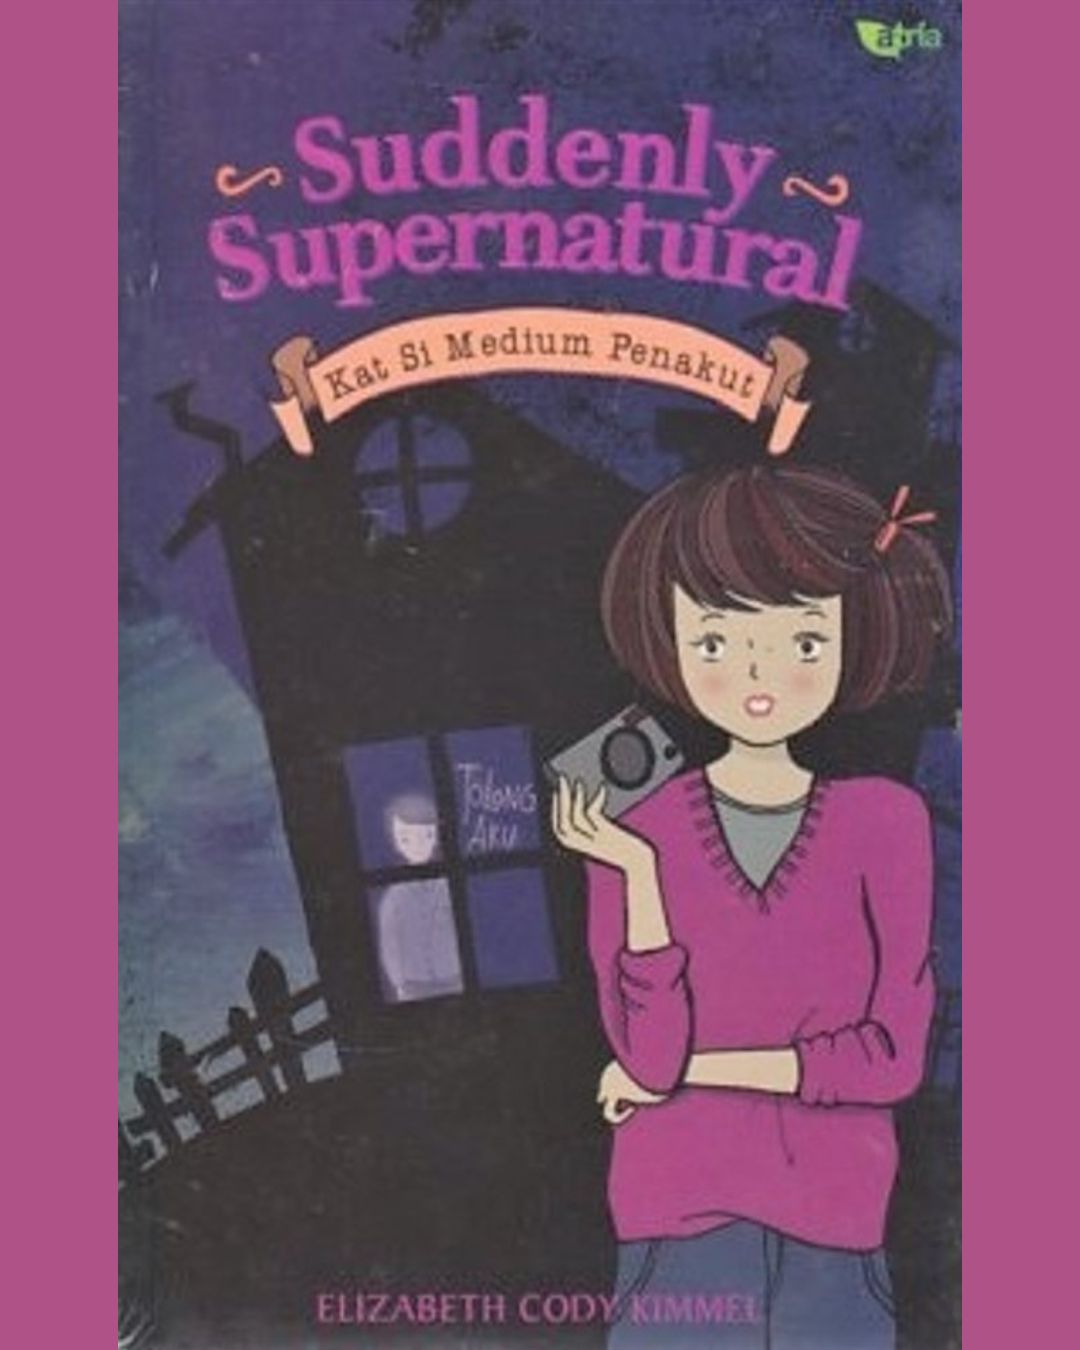 Suddenly Supernatural: Kat Si Medium Penakut